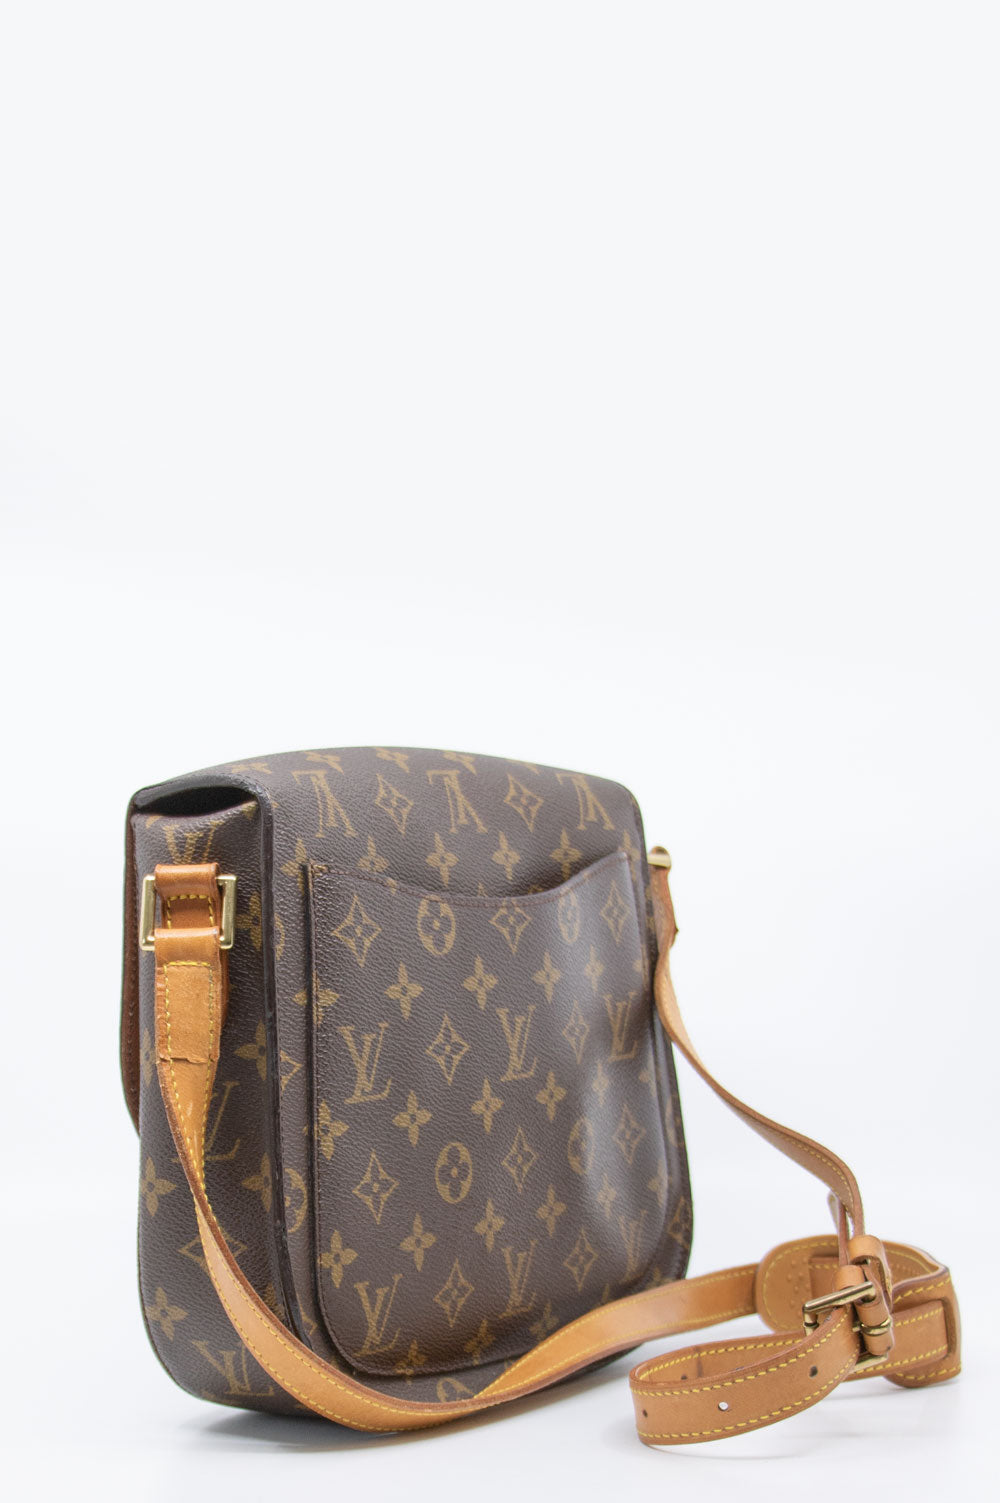 LOUIS VUITTON Saint Cloude GM Bag